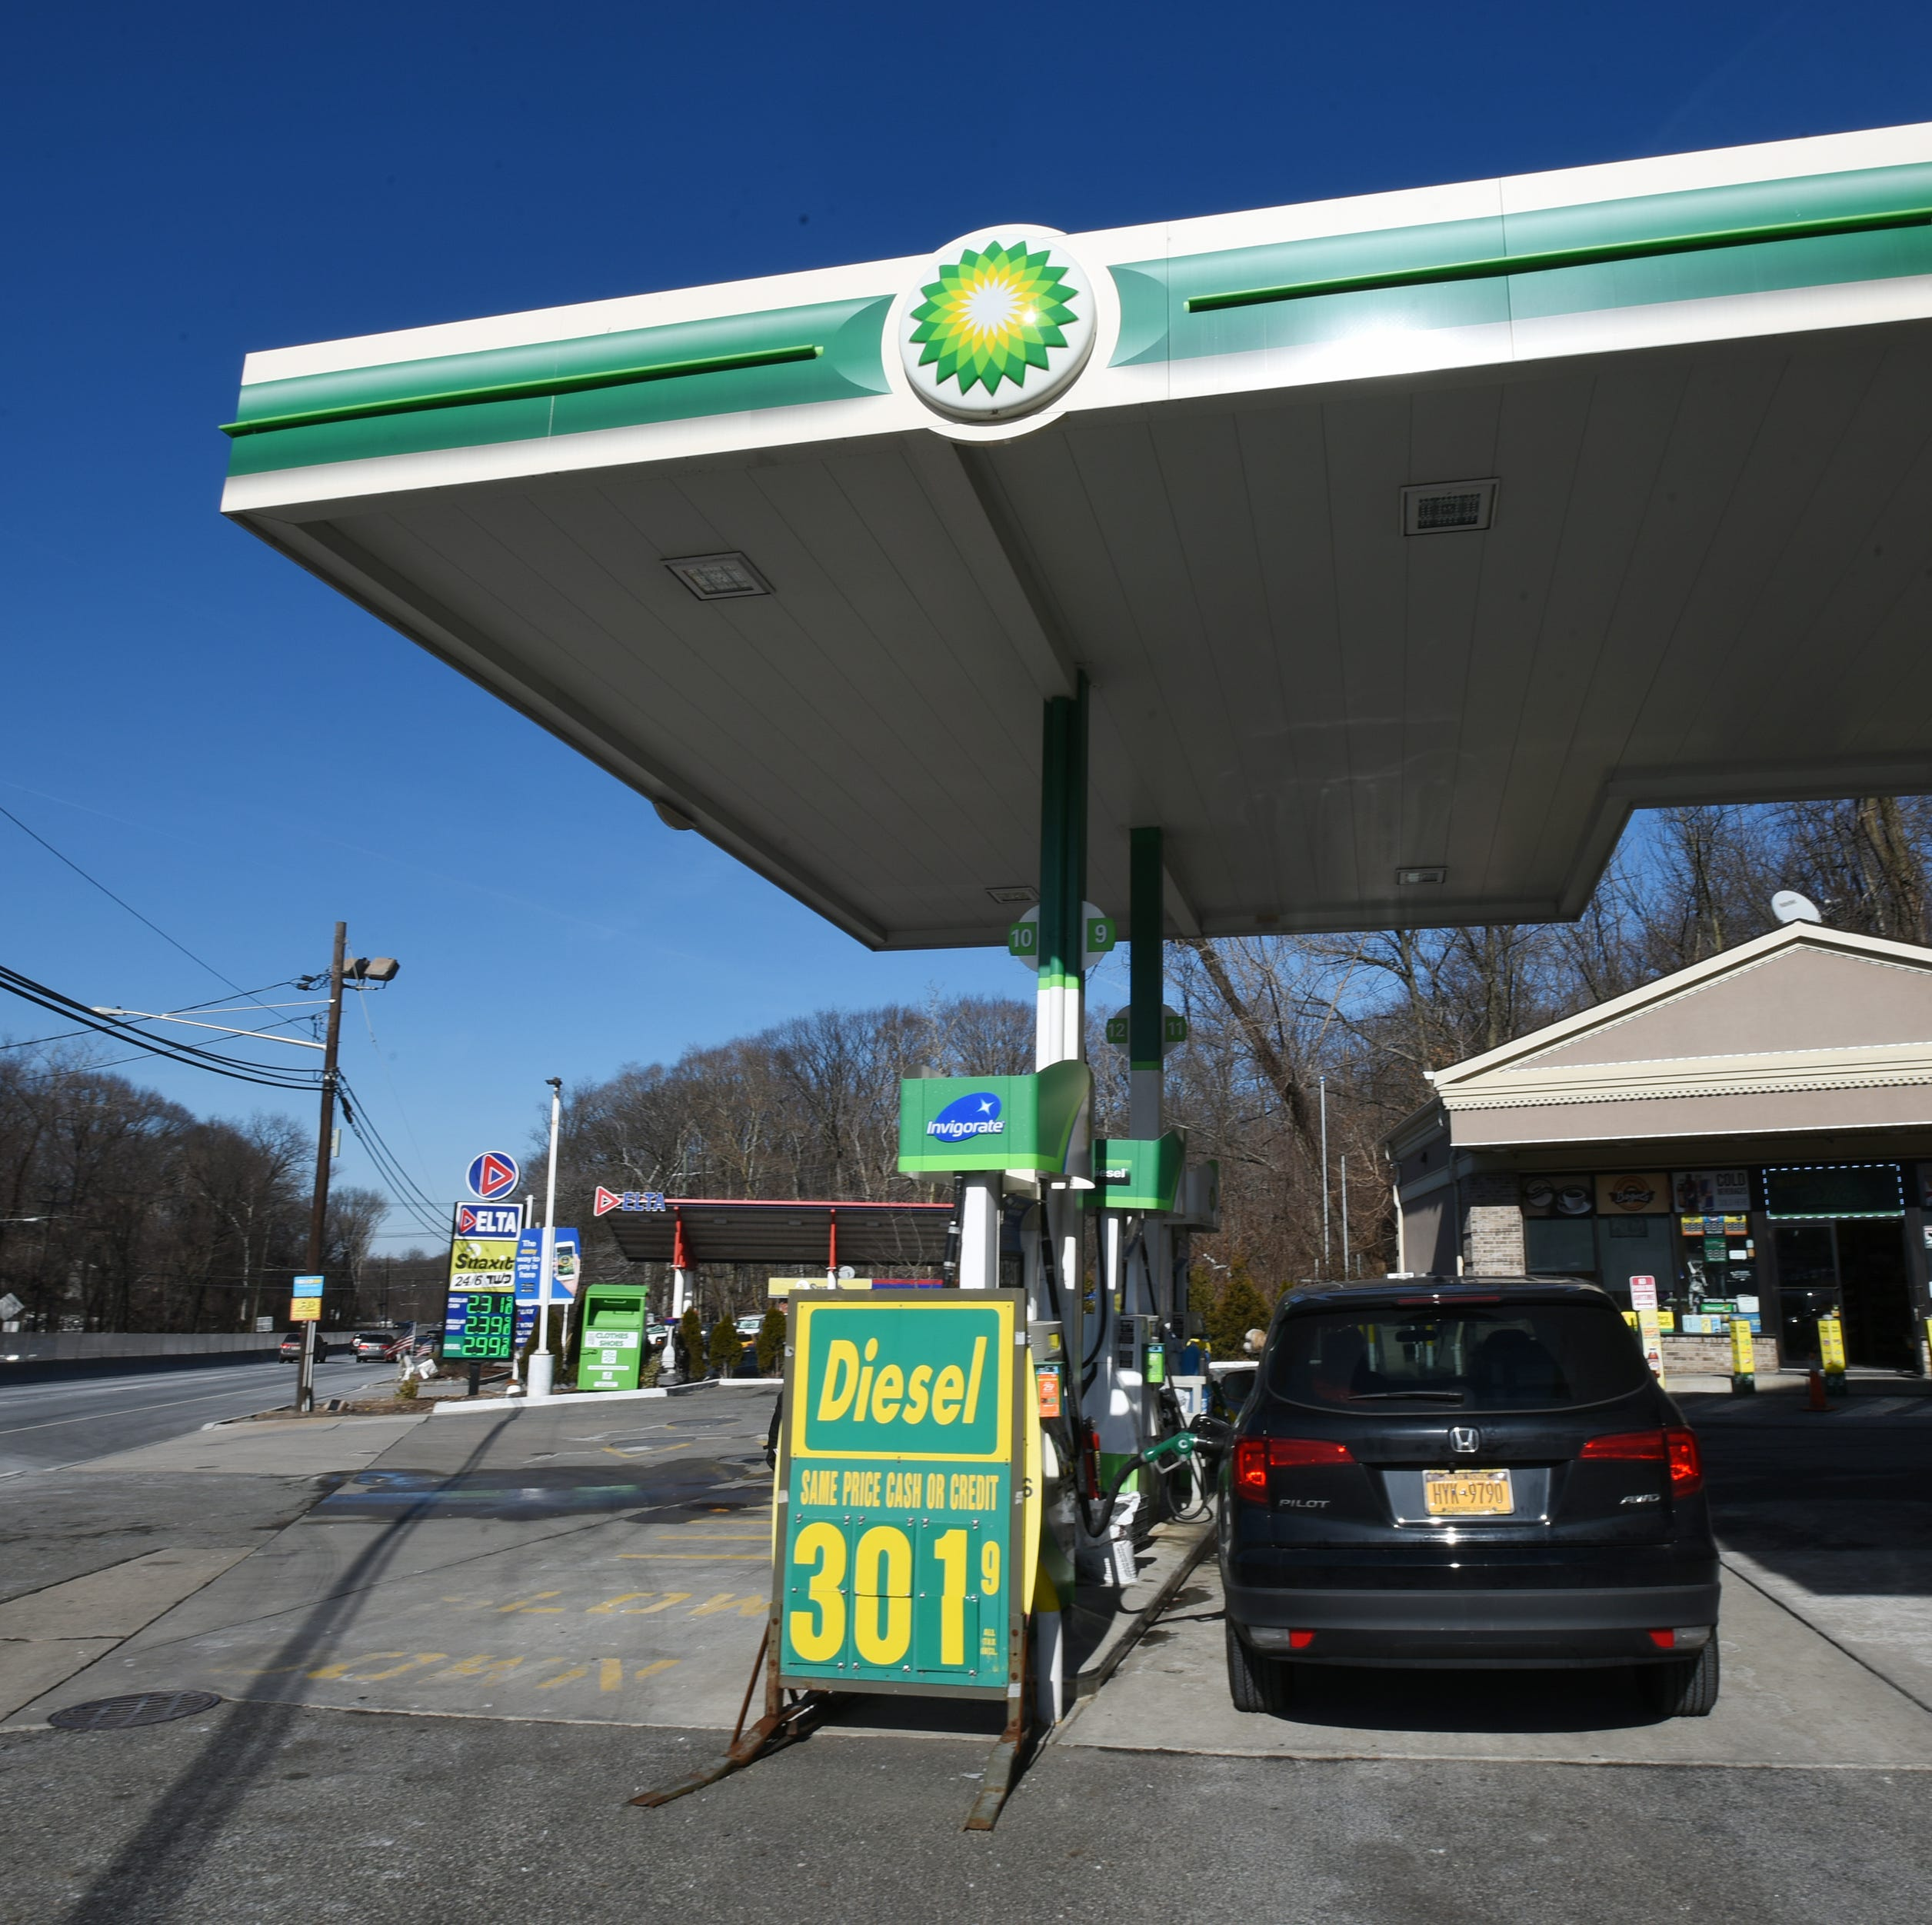 Gas prices keep moving up in New Jersey, across nation